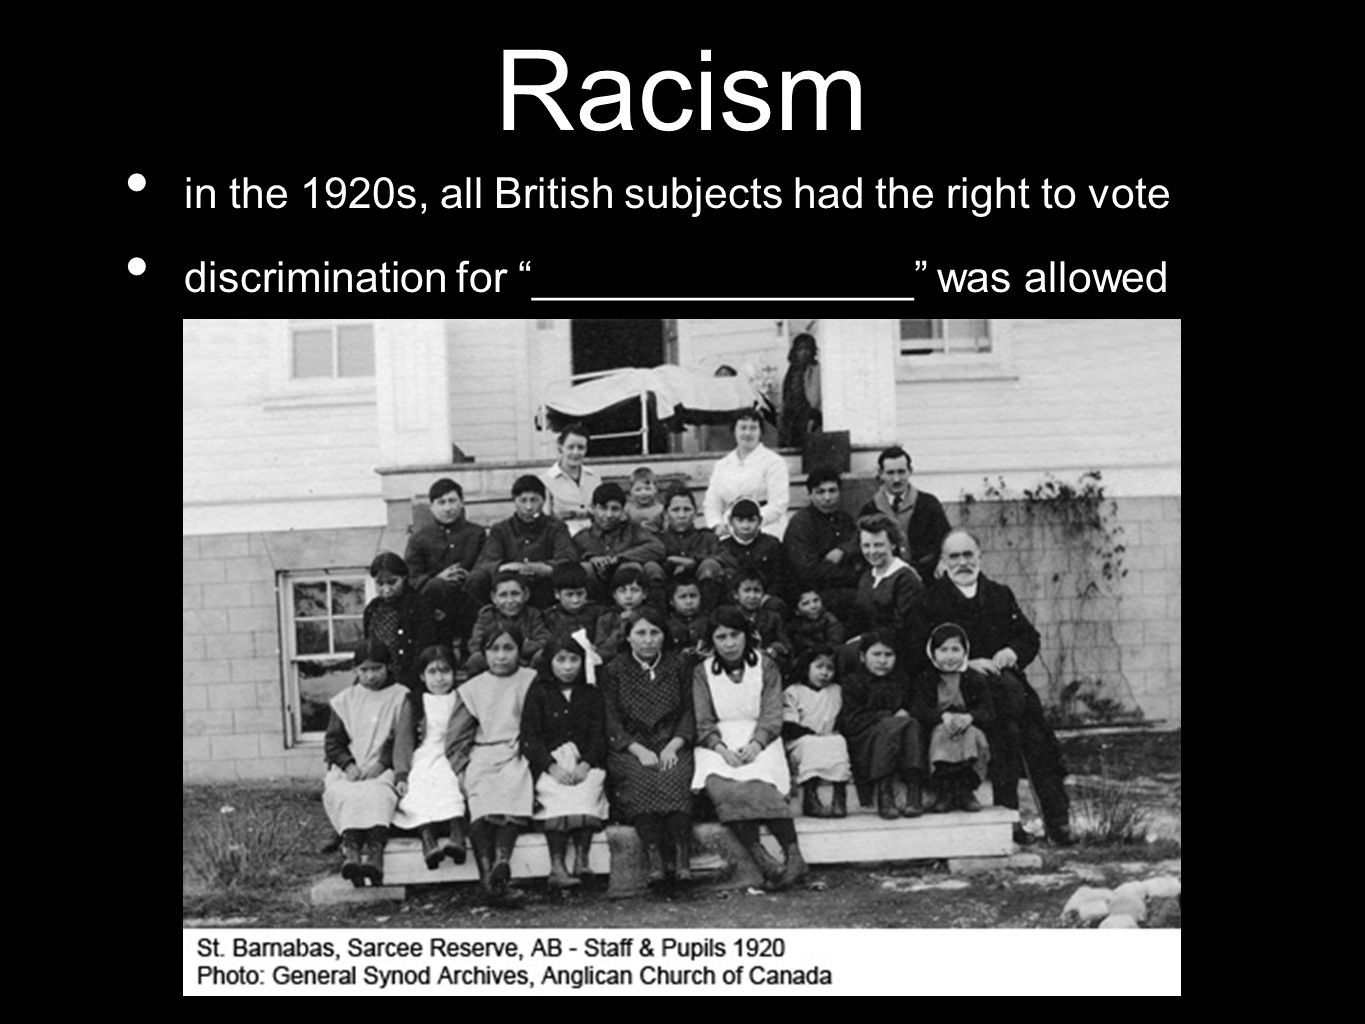 Racism in the 1920s, all British subjects had the right to vote discrimination for ________________ was allowed